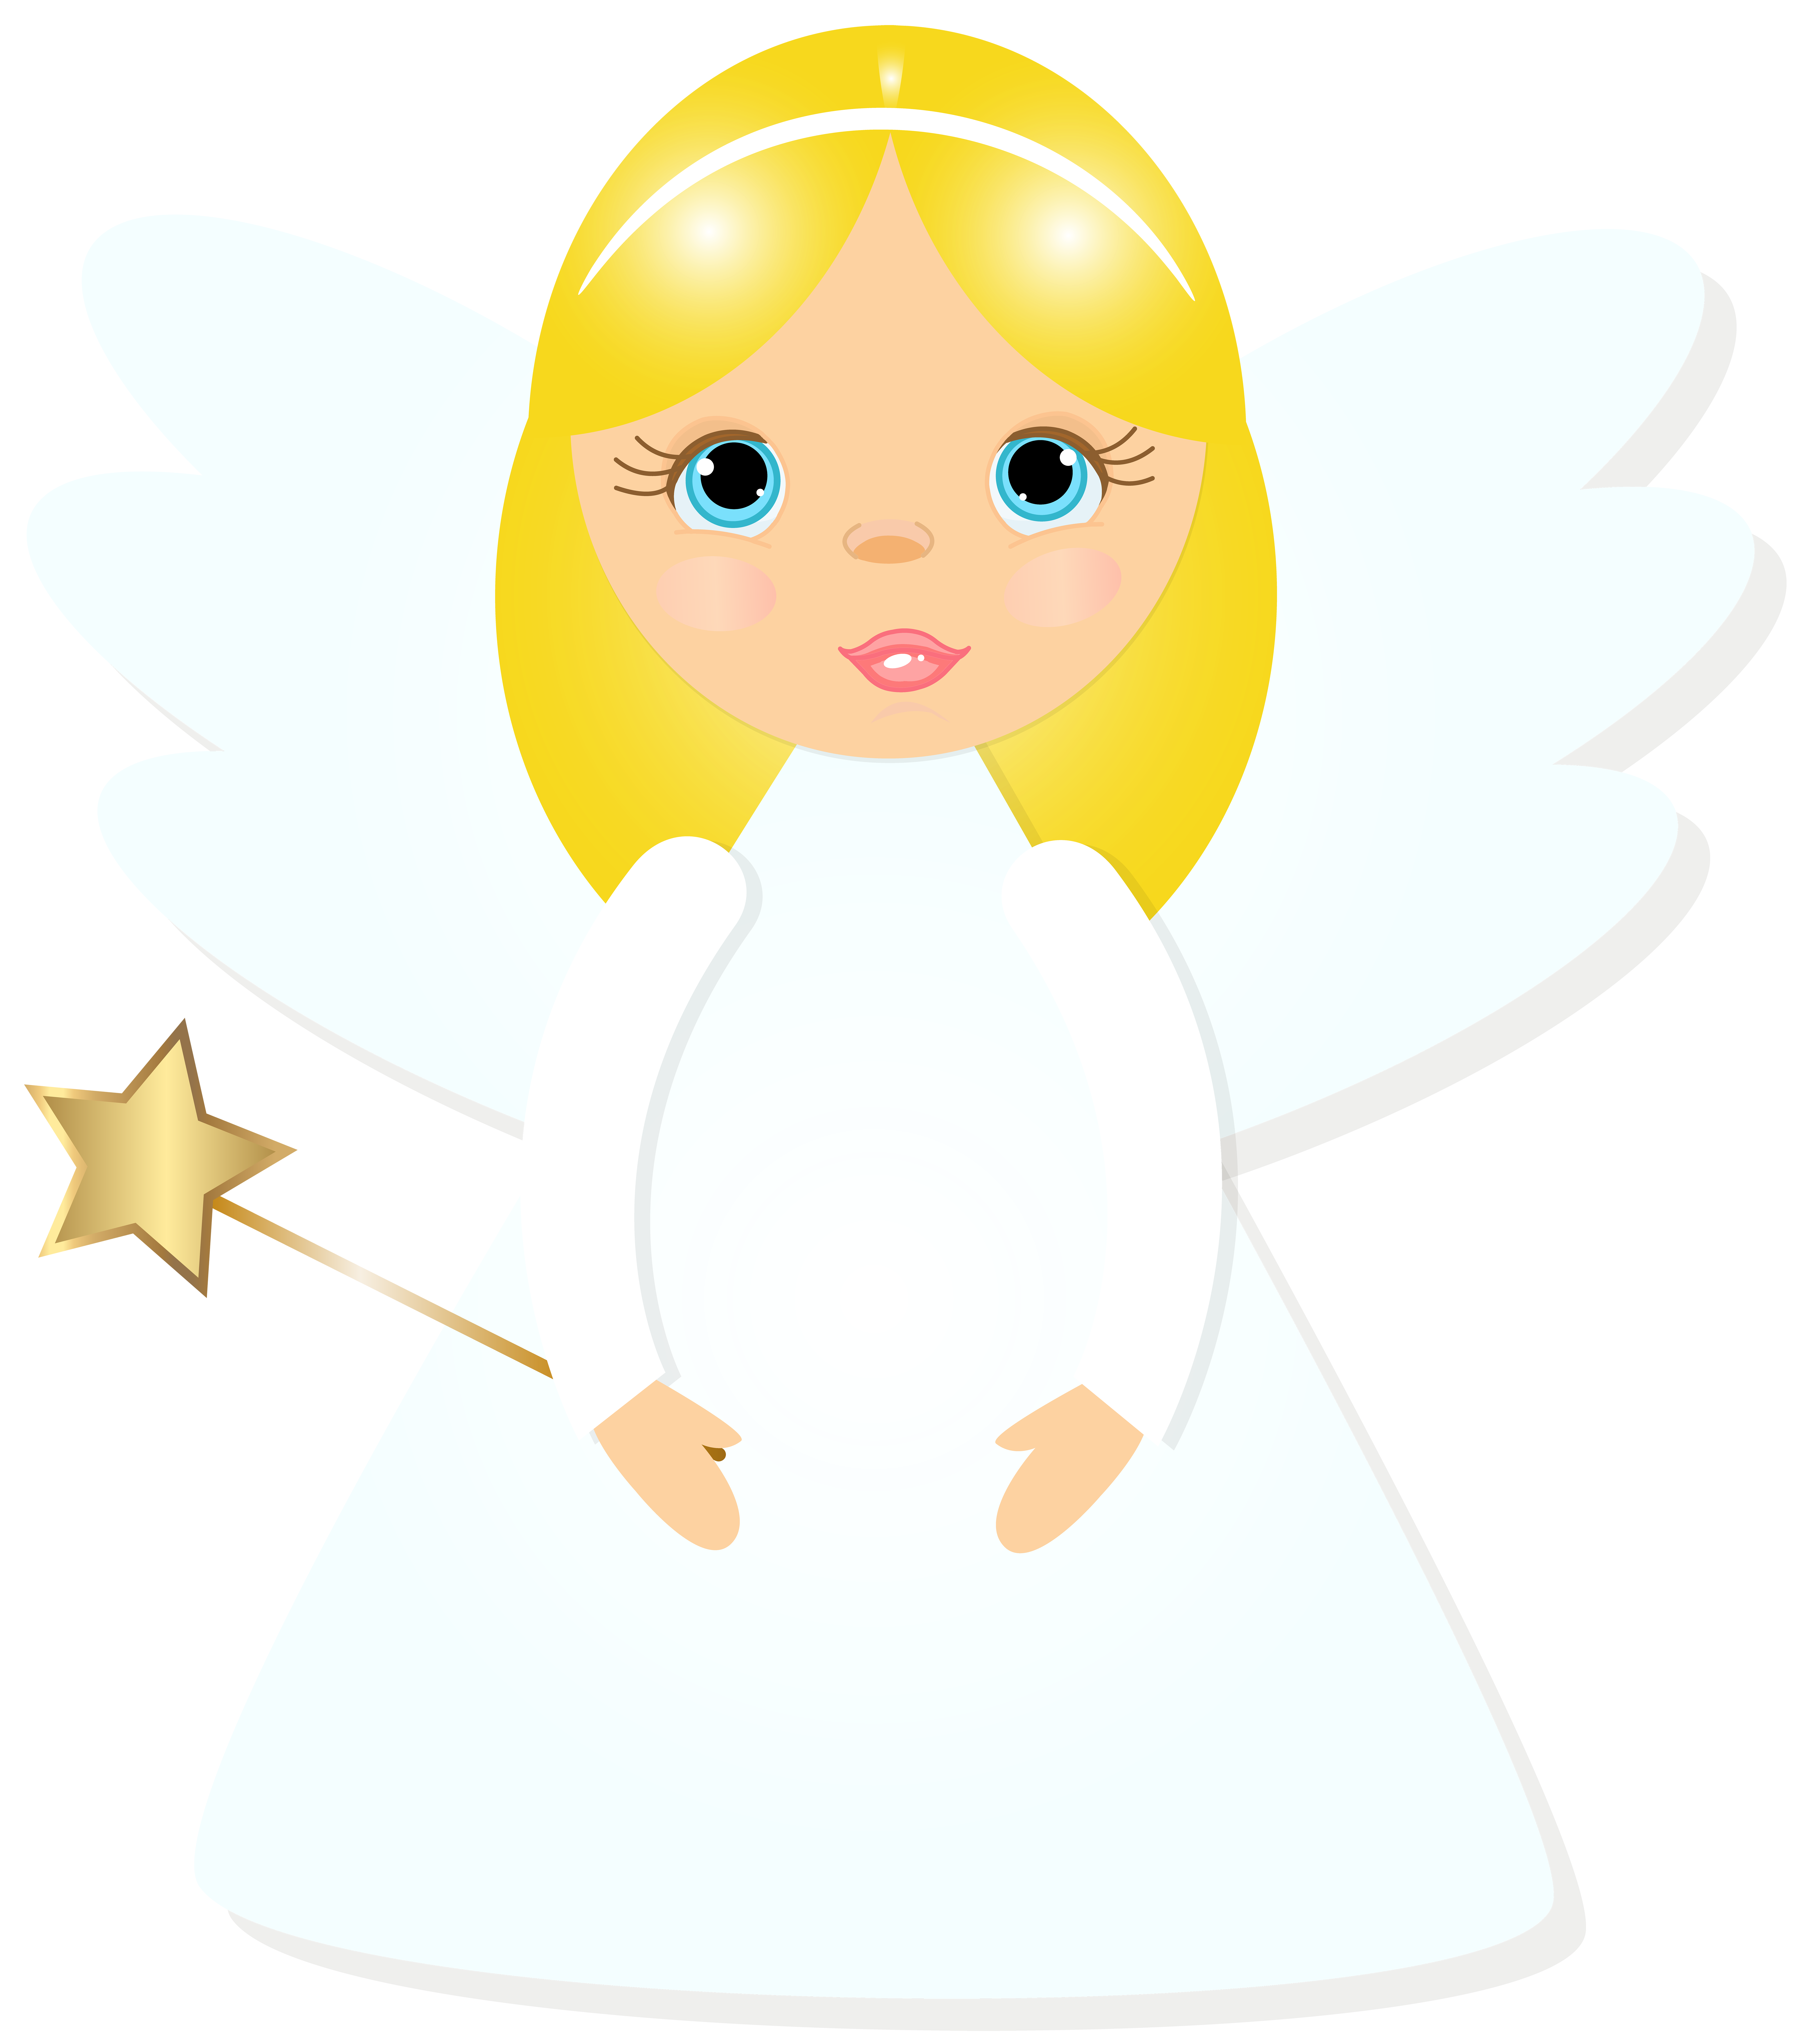 7031x8000 Christmas Angel Transparent Png Clip Art Imageu200b Gallery